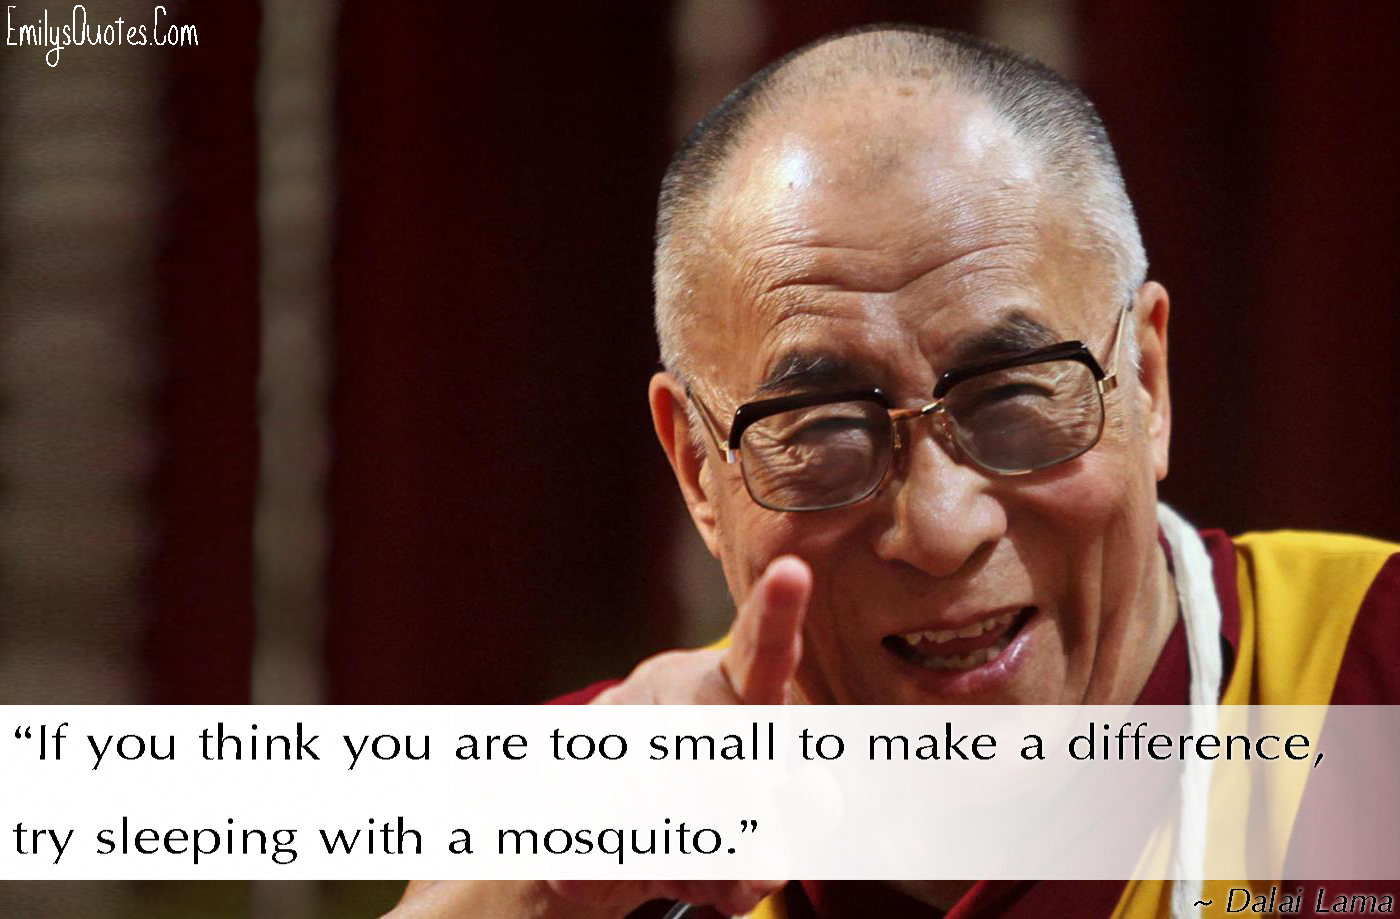 EmilysQuotes.Com -  Dalai Lama. funny, difference, encouraging, wisdom